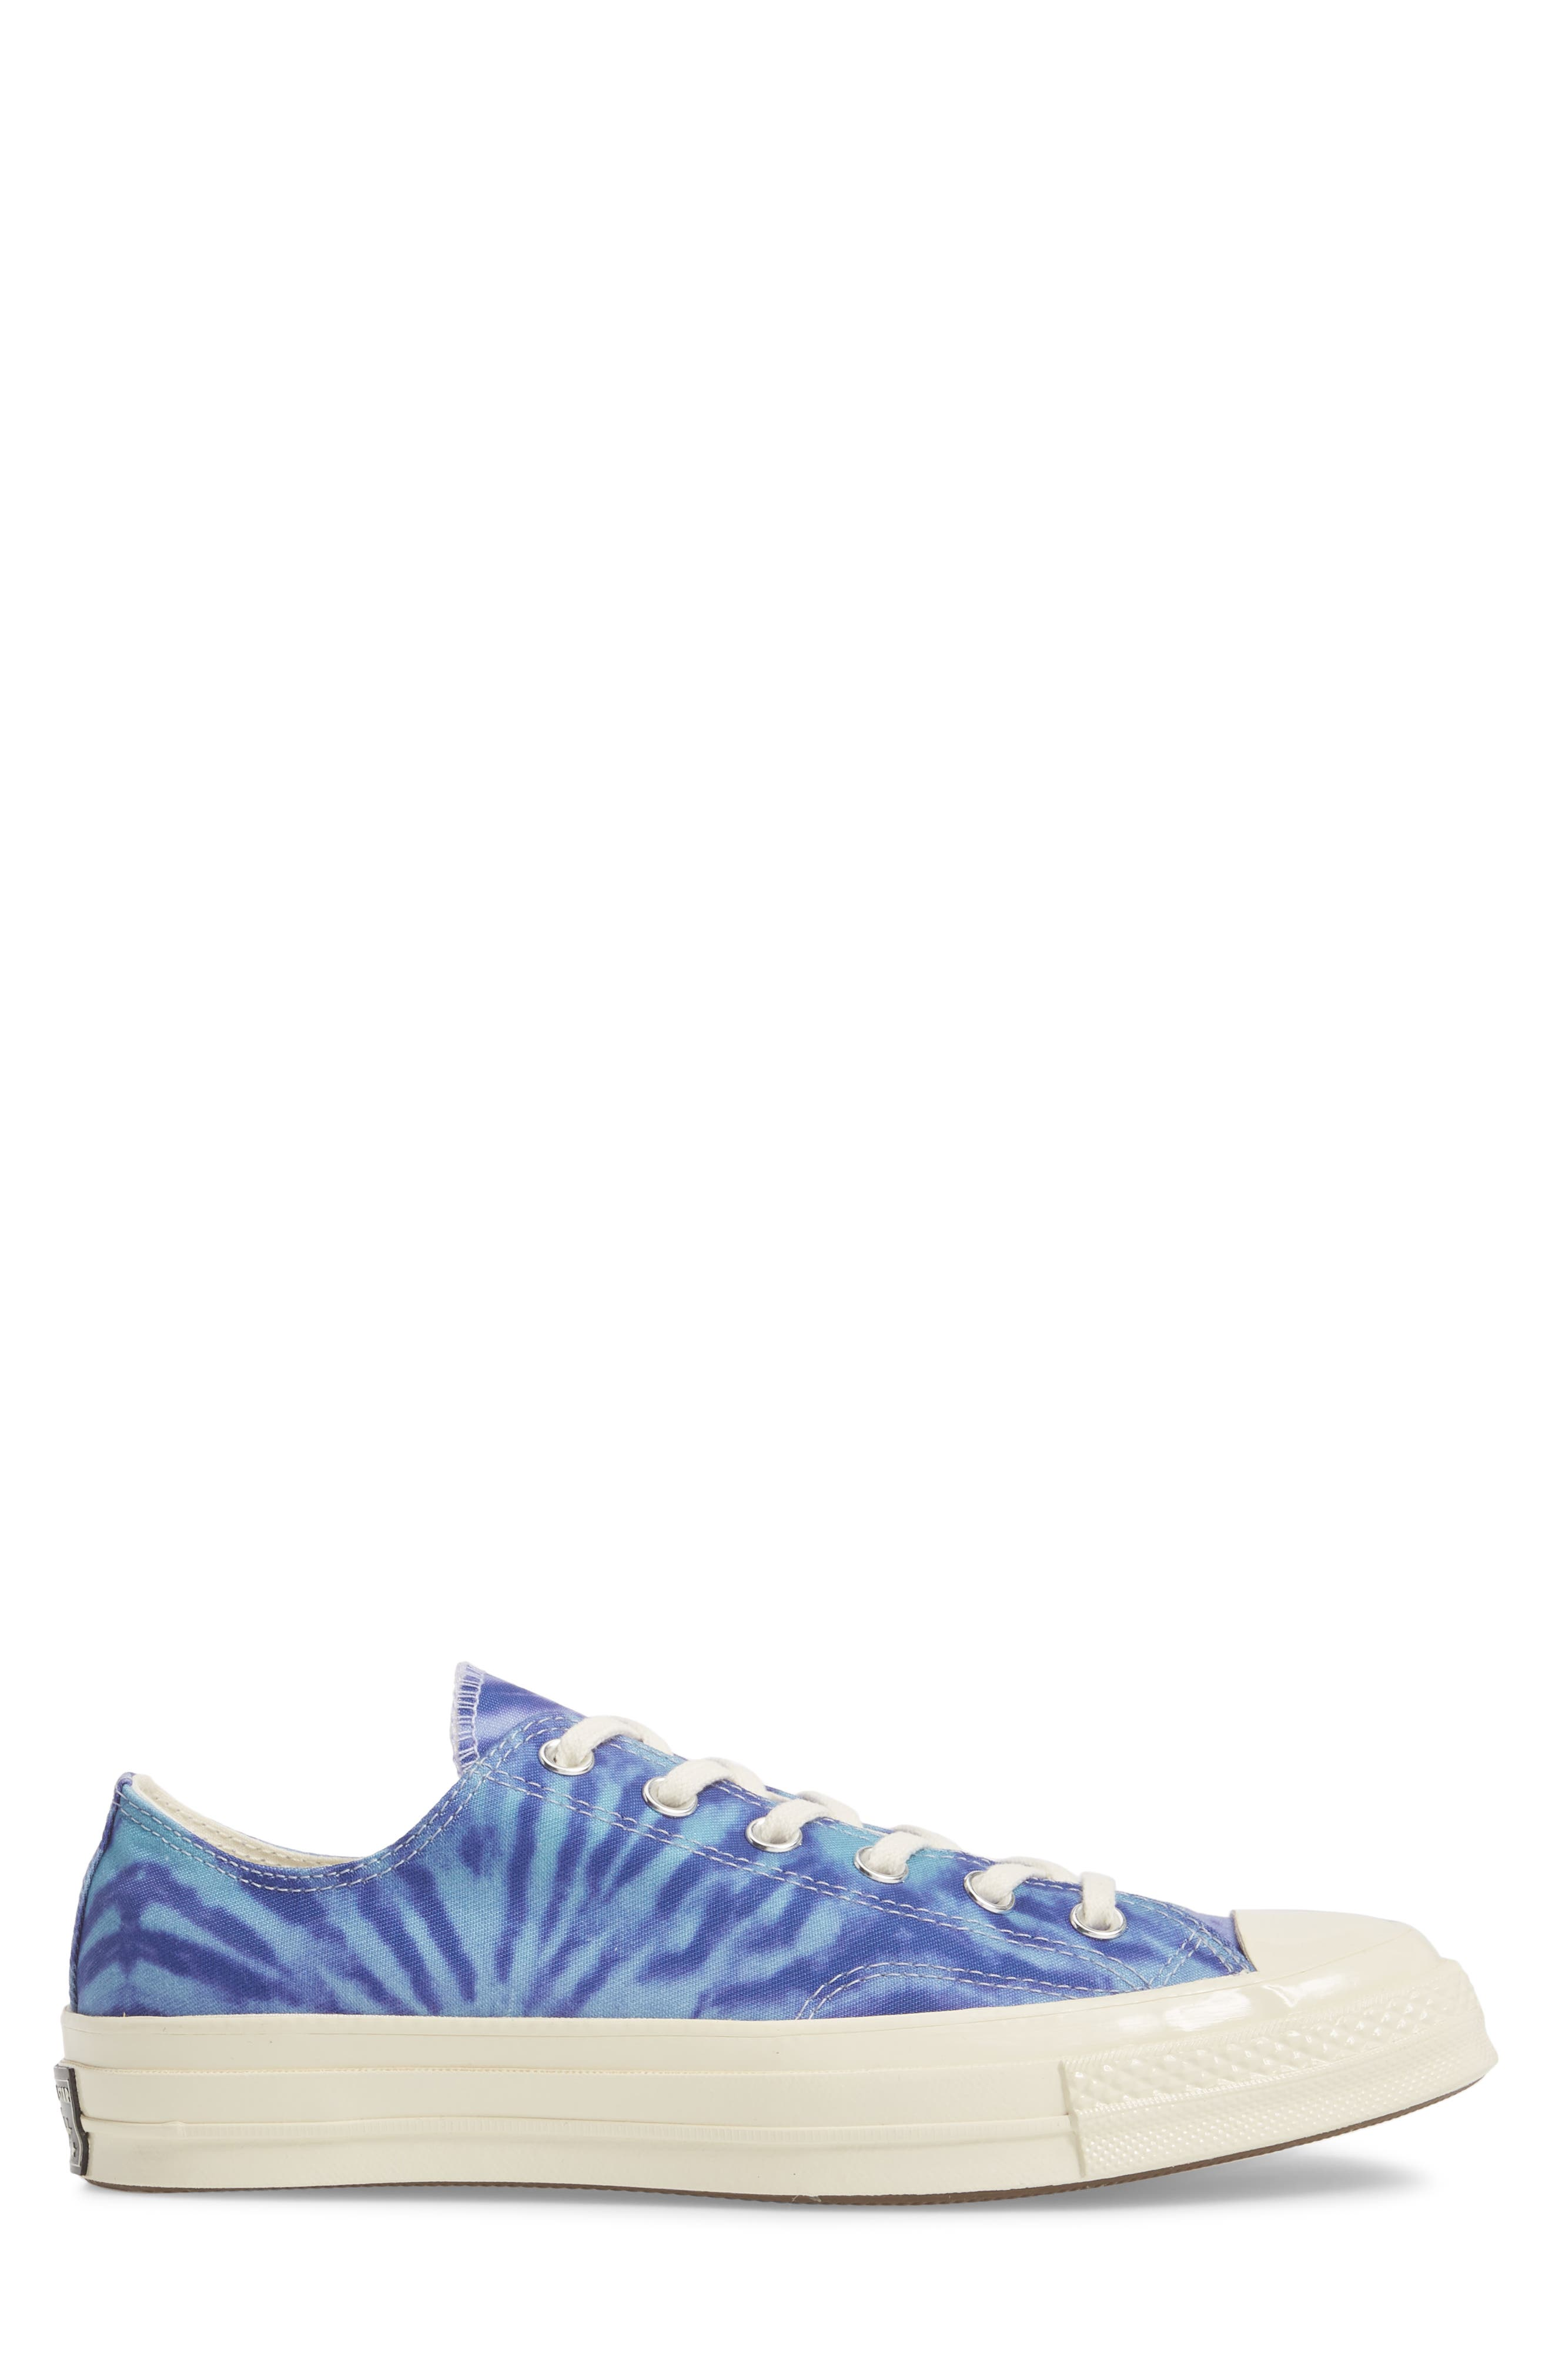 Chuck Taylor<sup>®</sup> All Star<sup>®</sup> 70 Tie Dye Low Top Sneaker,                             Alternate thumbnail 3, color,                             Shoreline Blue